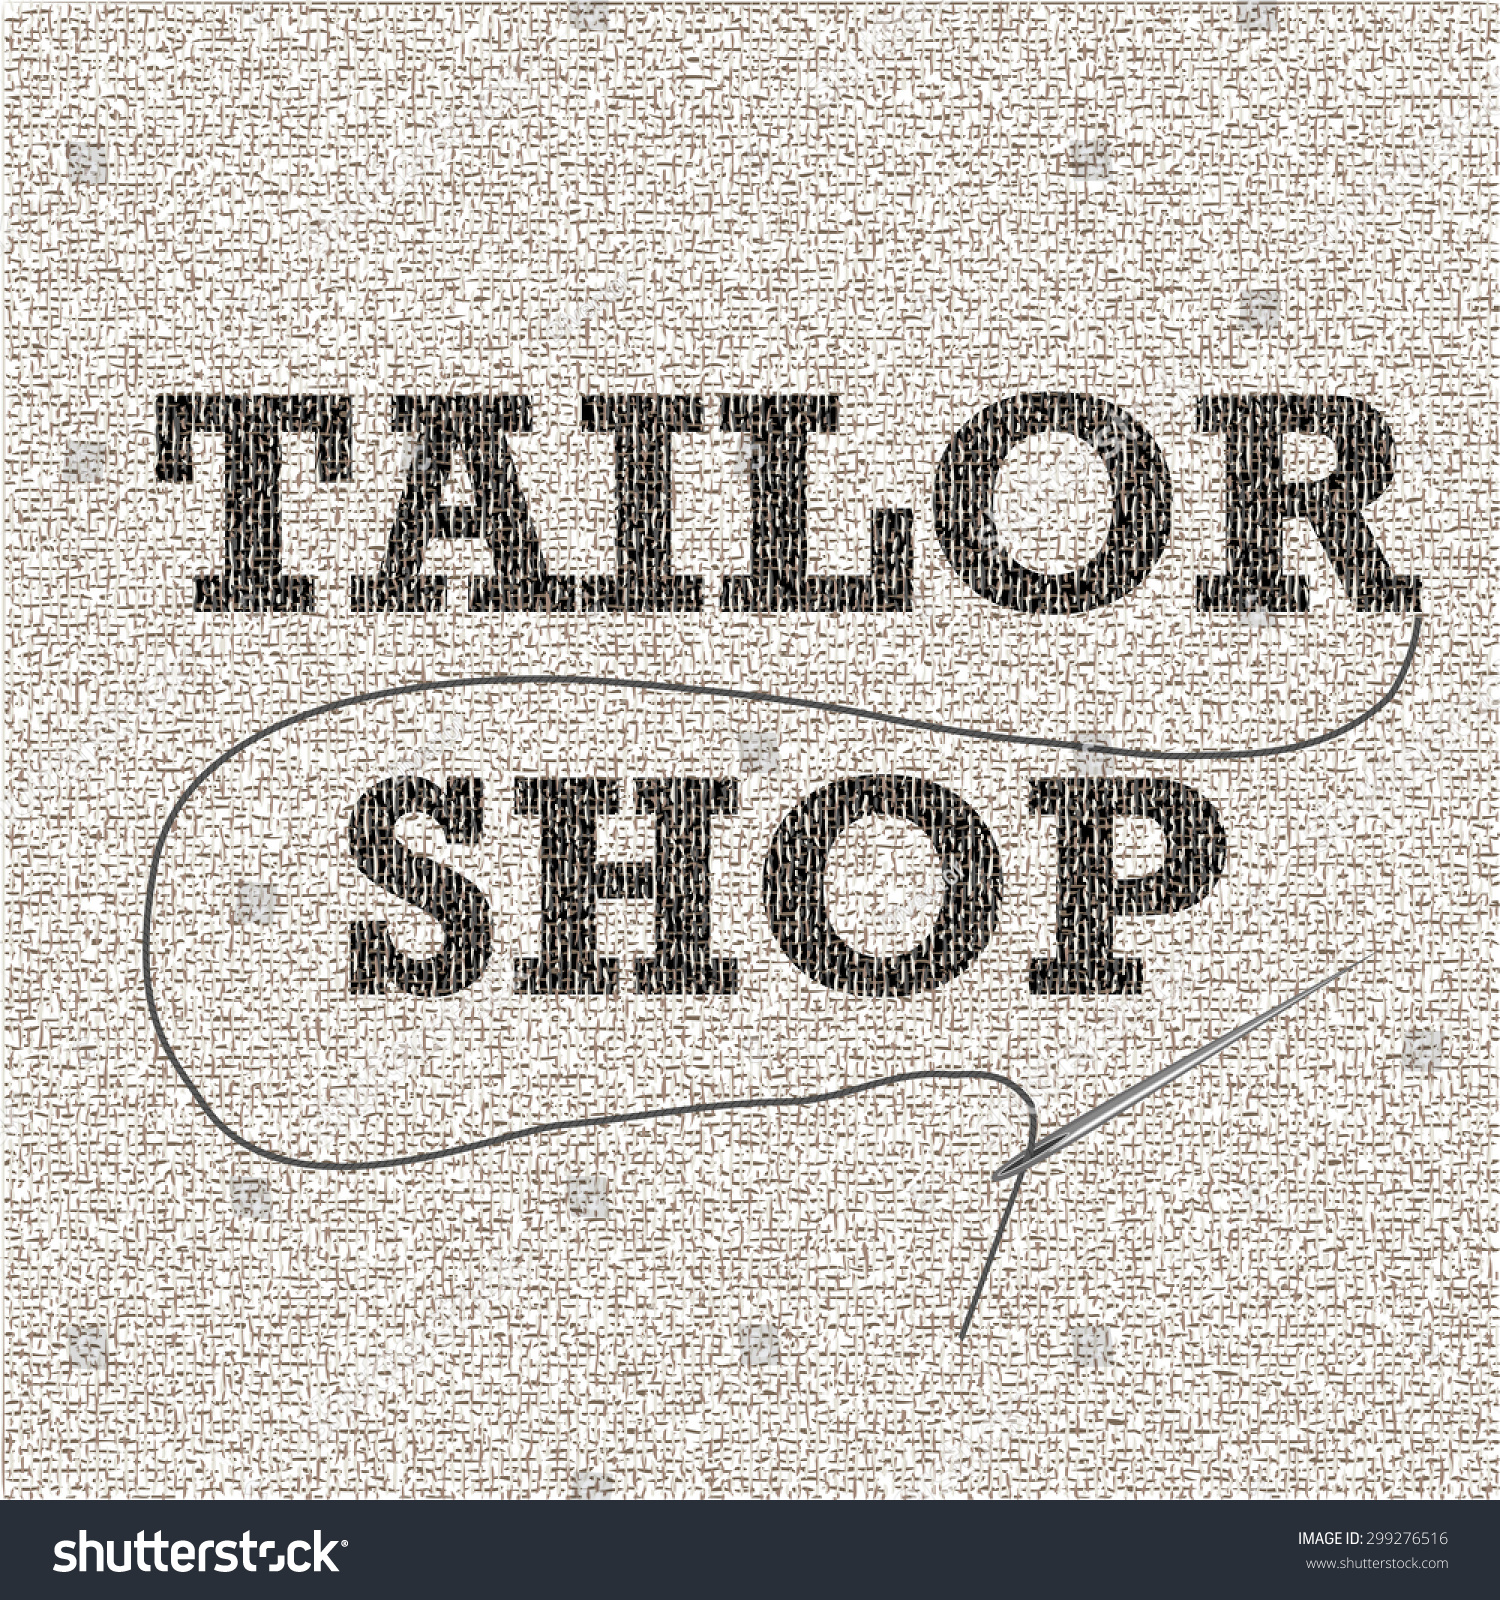 Tailor shop vector banner sewing shop stock vector 299276516 tailor shop vector banner for sewing shop designed with fabric threads and stitches magicingreecefo Image collections